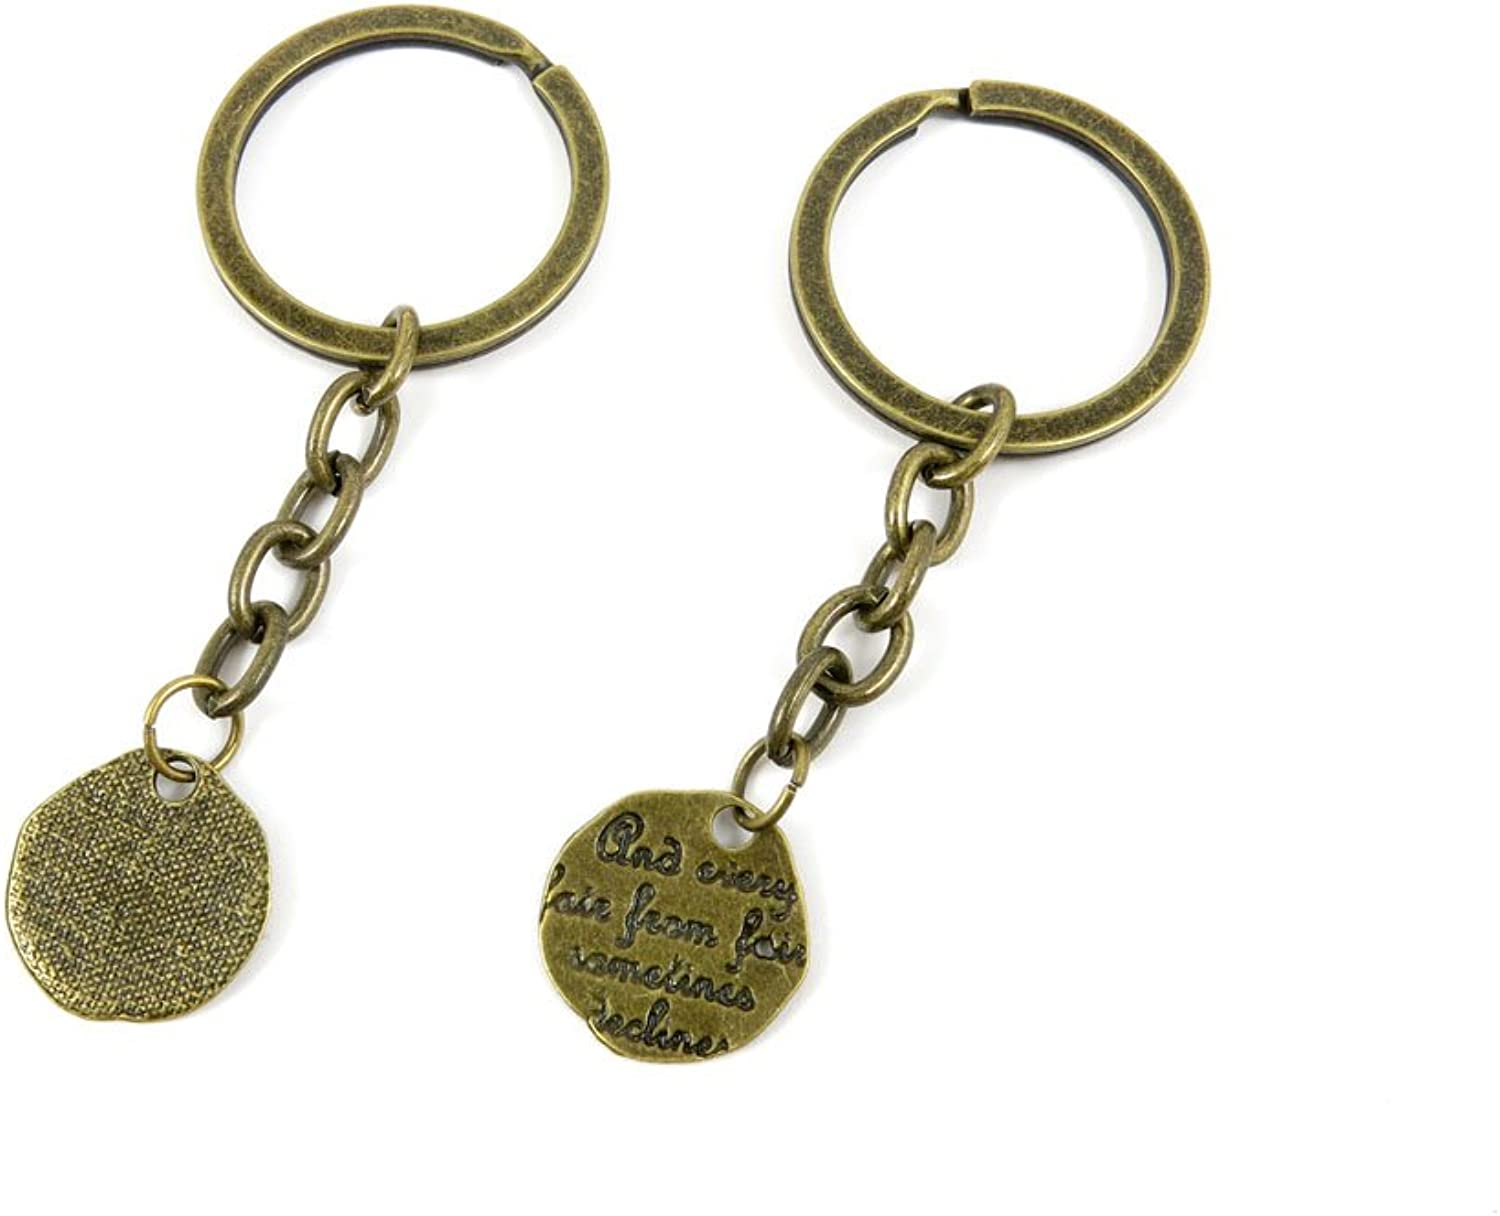 230 Pieces Fashion Jewelry Keyring Keychain Door Car Key Tag Ring Chain Supplier Supply Wholesale Bulk Lots V6YV8 Words Tag Signs